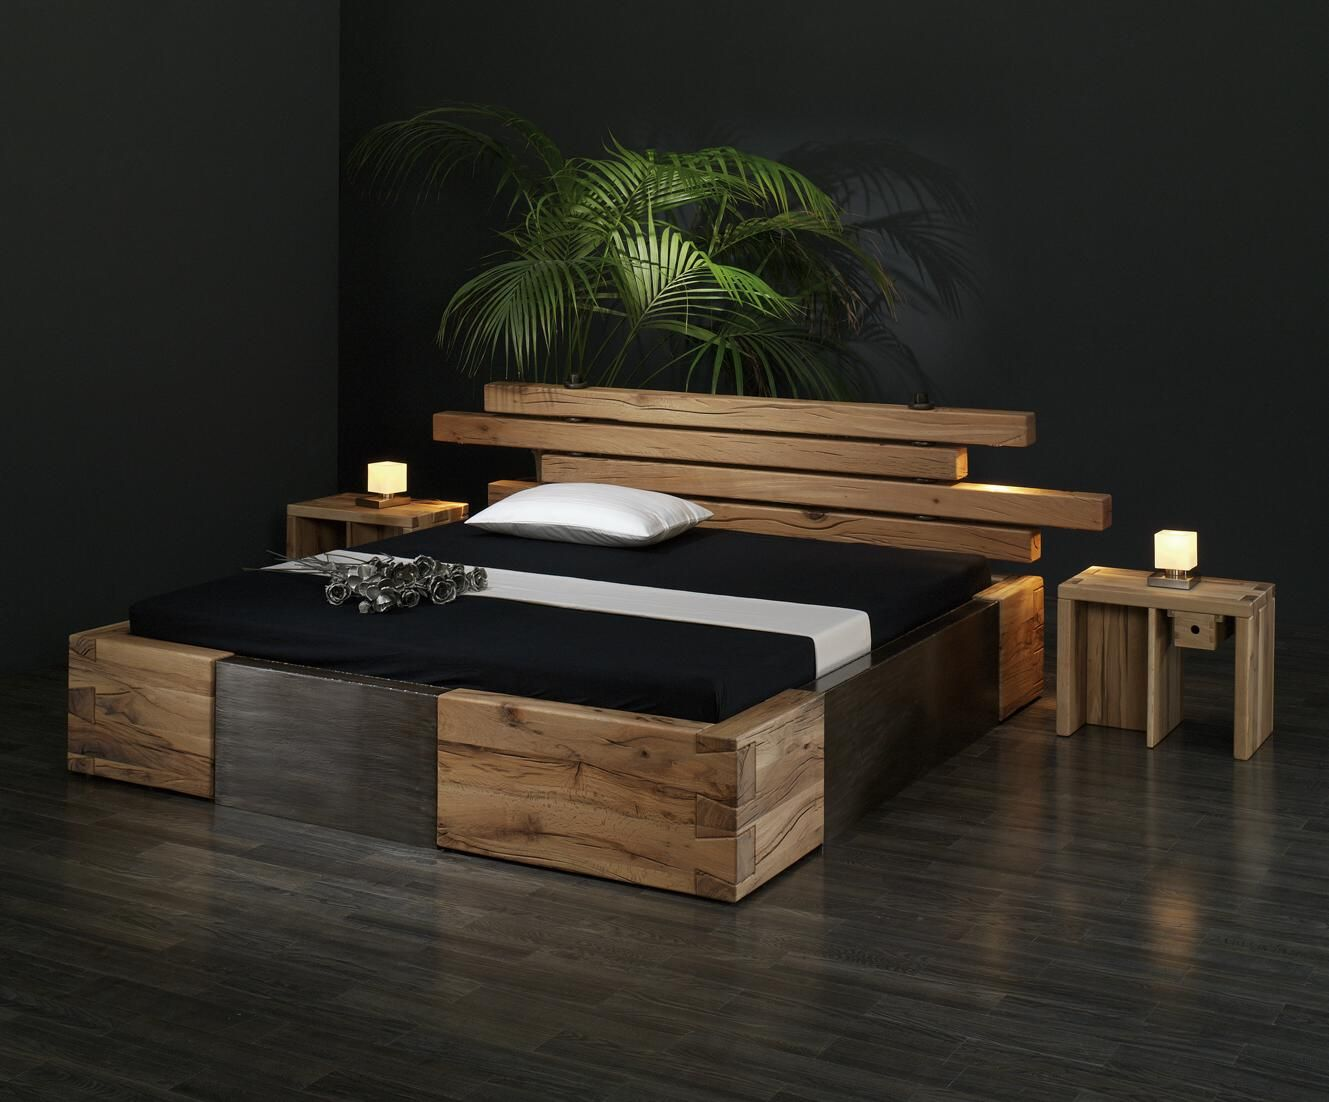 Massivholzbetten design  holz bett design - Google Search | Bedroom | Pinterest | Google ...